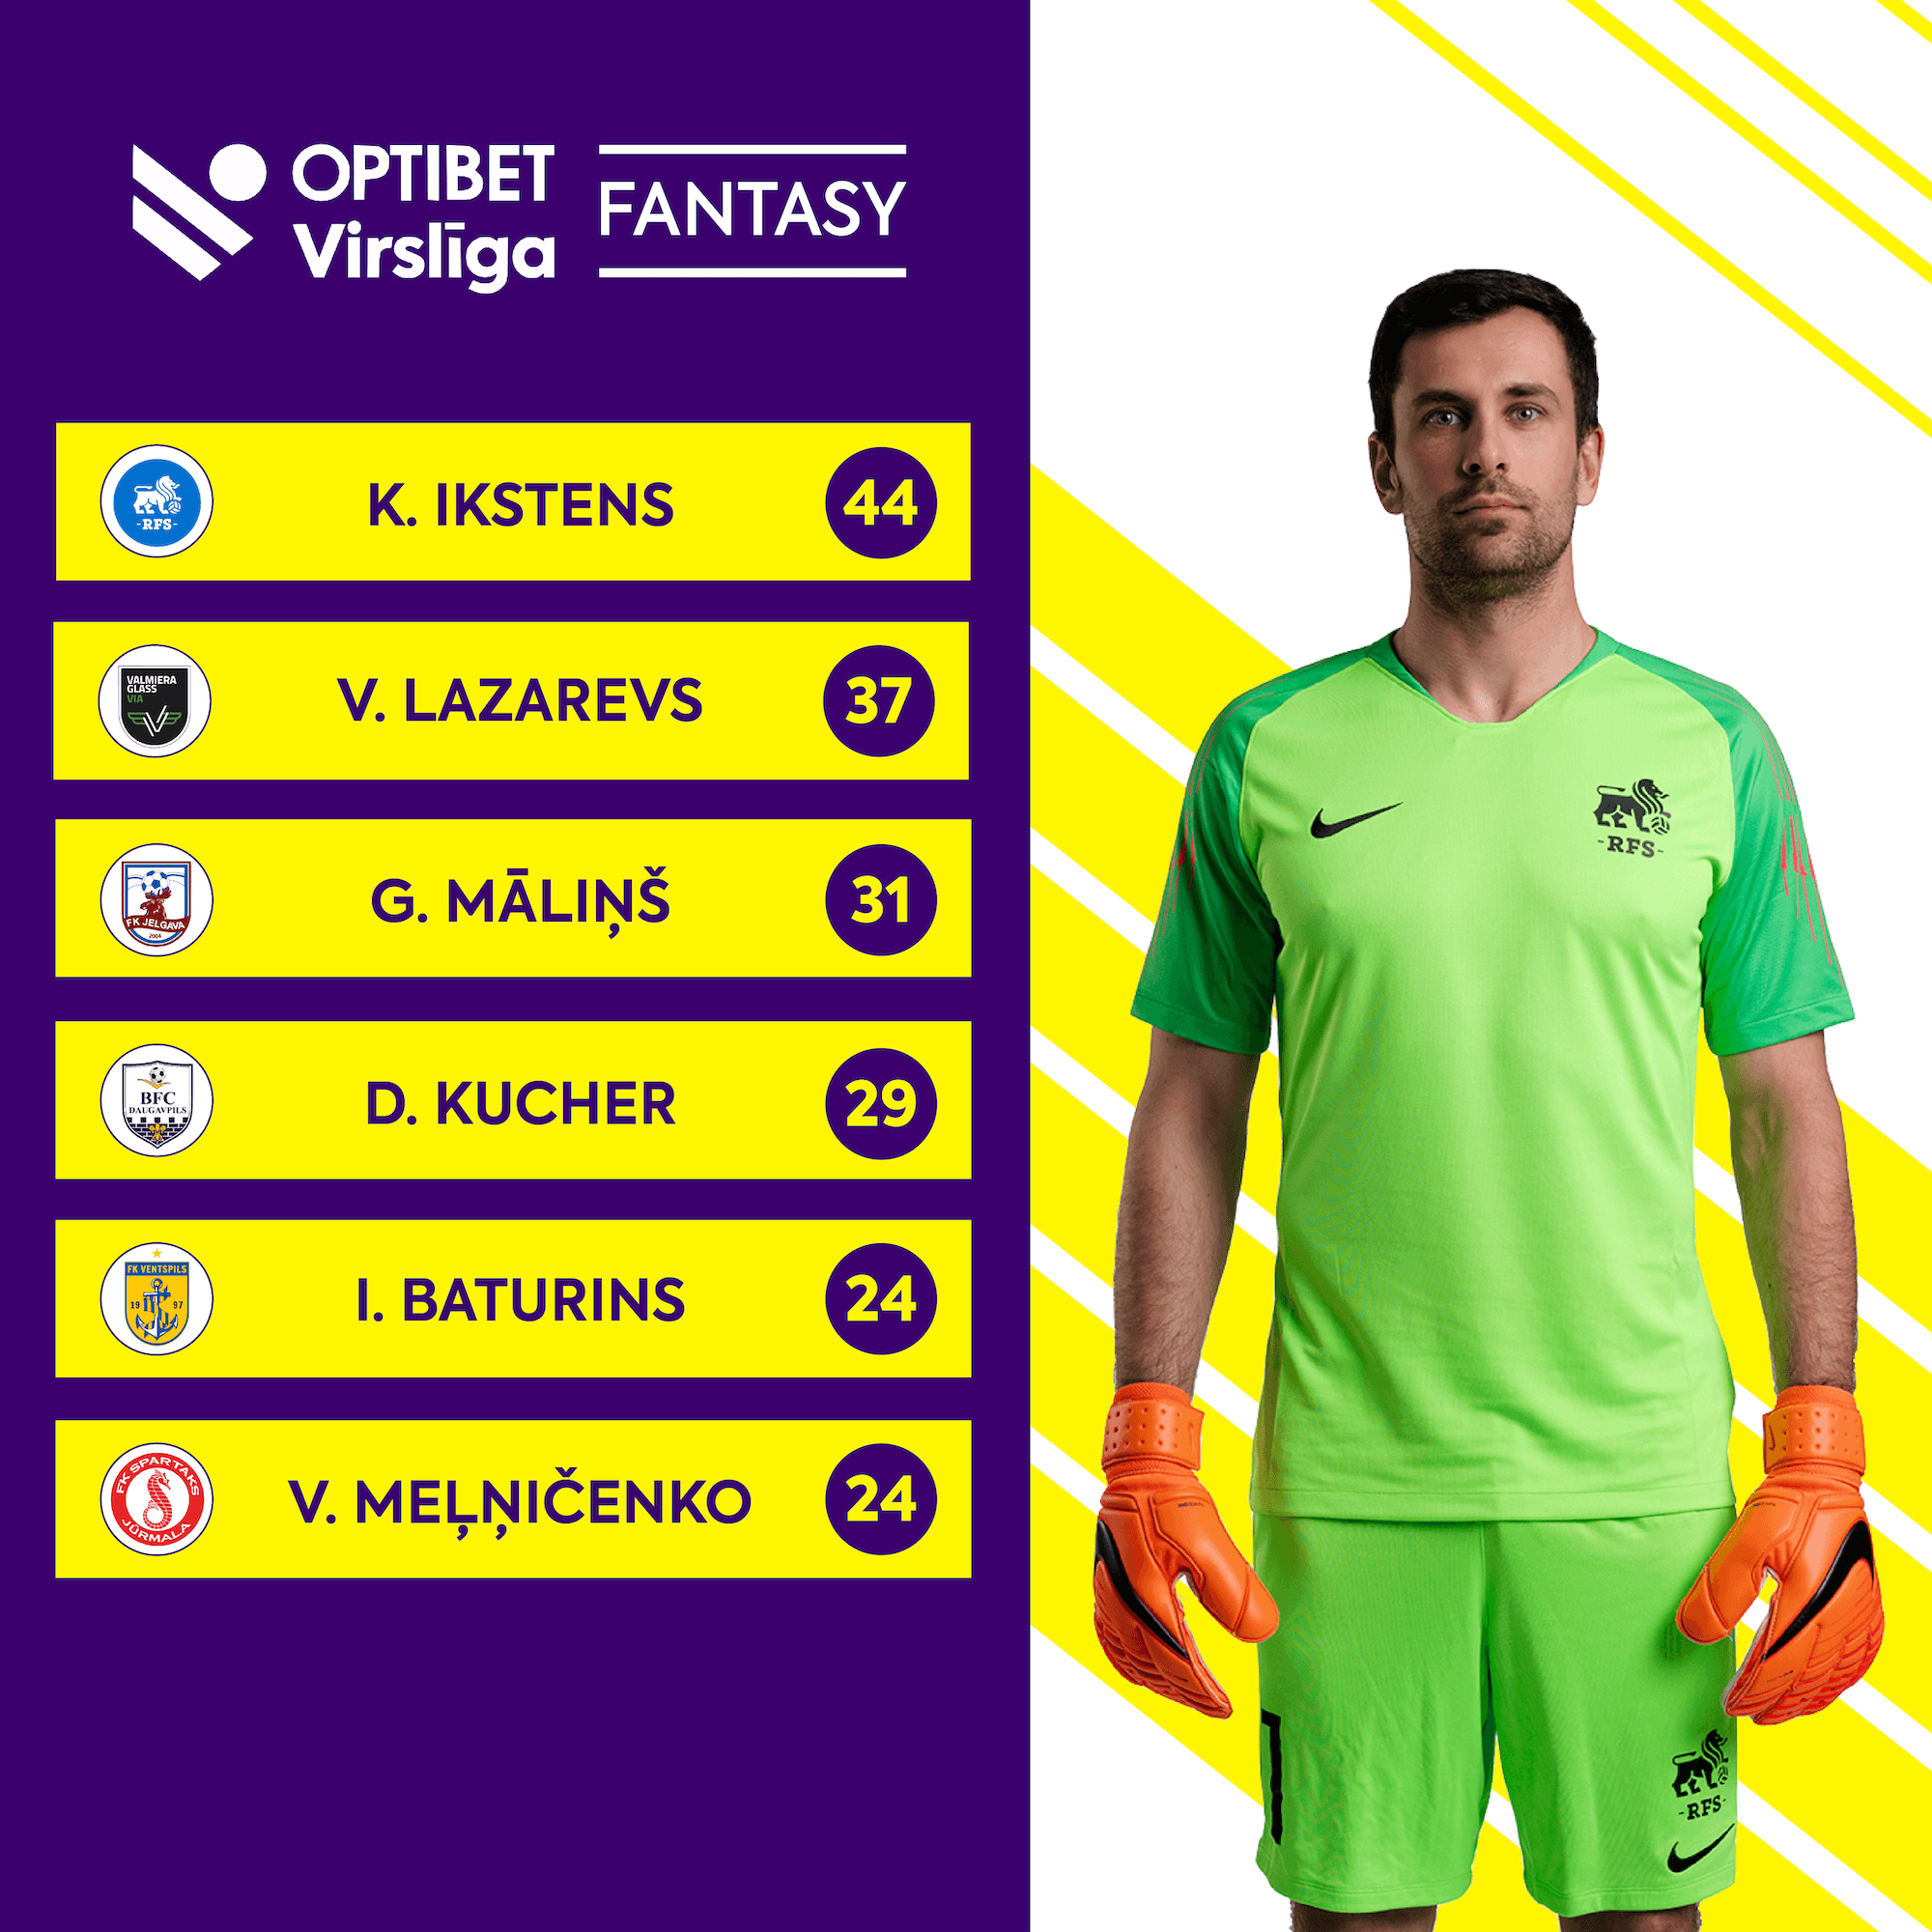 Fantasy Virsliga Best Goalkeeper